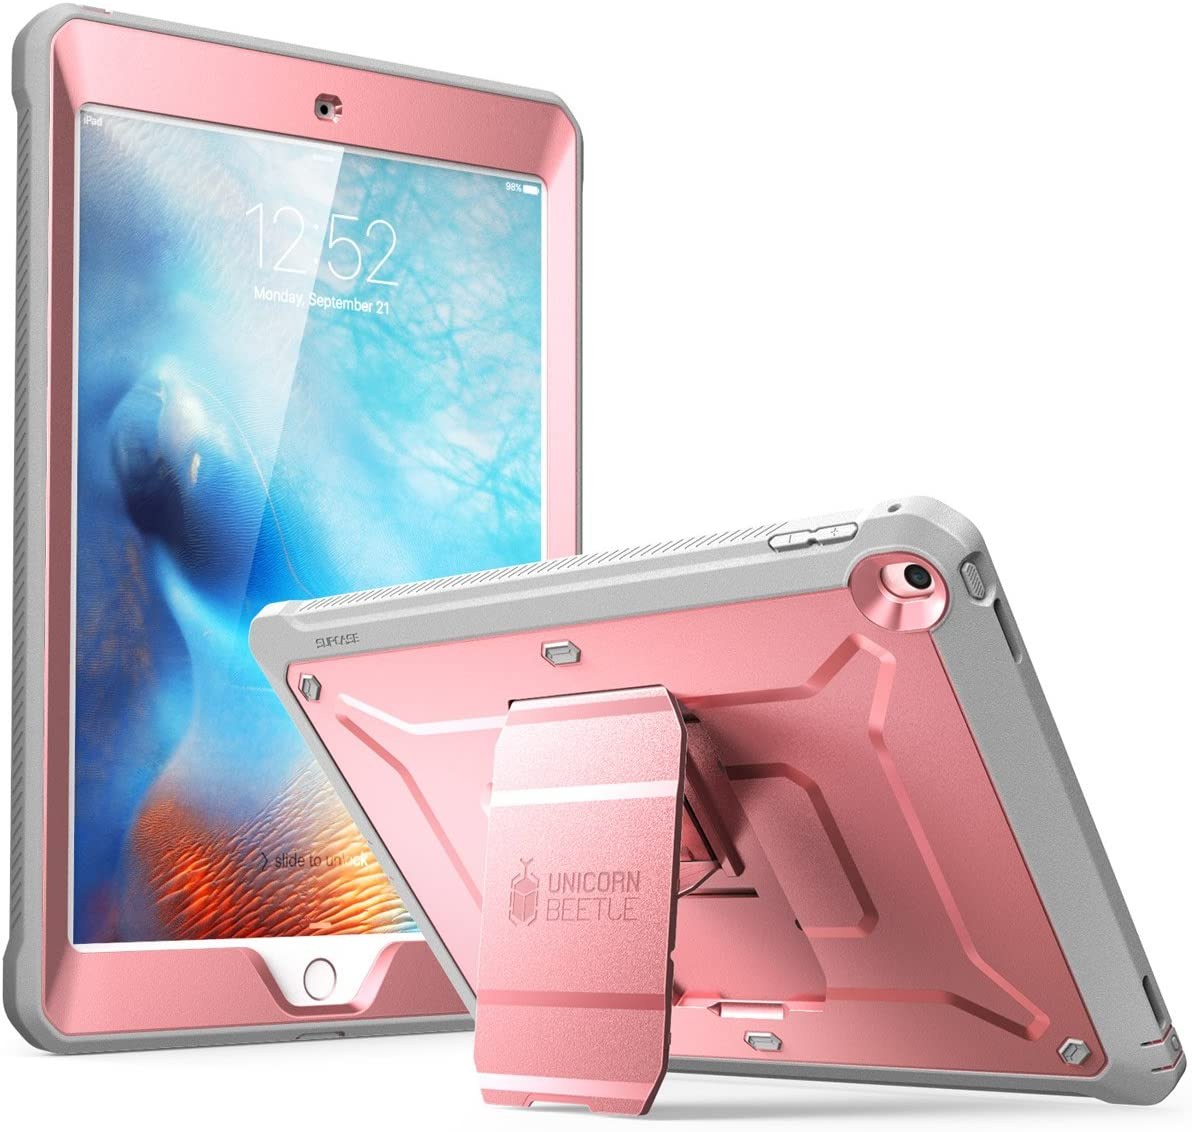 SUPCASE Unicorn Beetle Pro Series Case Designed for iPad 9.7 2018/2017, with Built-in Screen Protector & Dual Layer Full Body Rugged Protective Case for iPad 9.7 5th / 6th Generation(RoseGold)